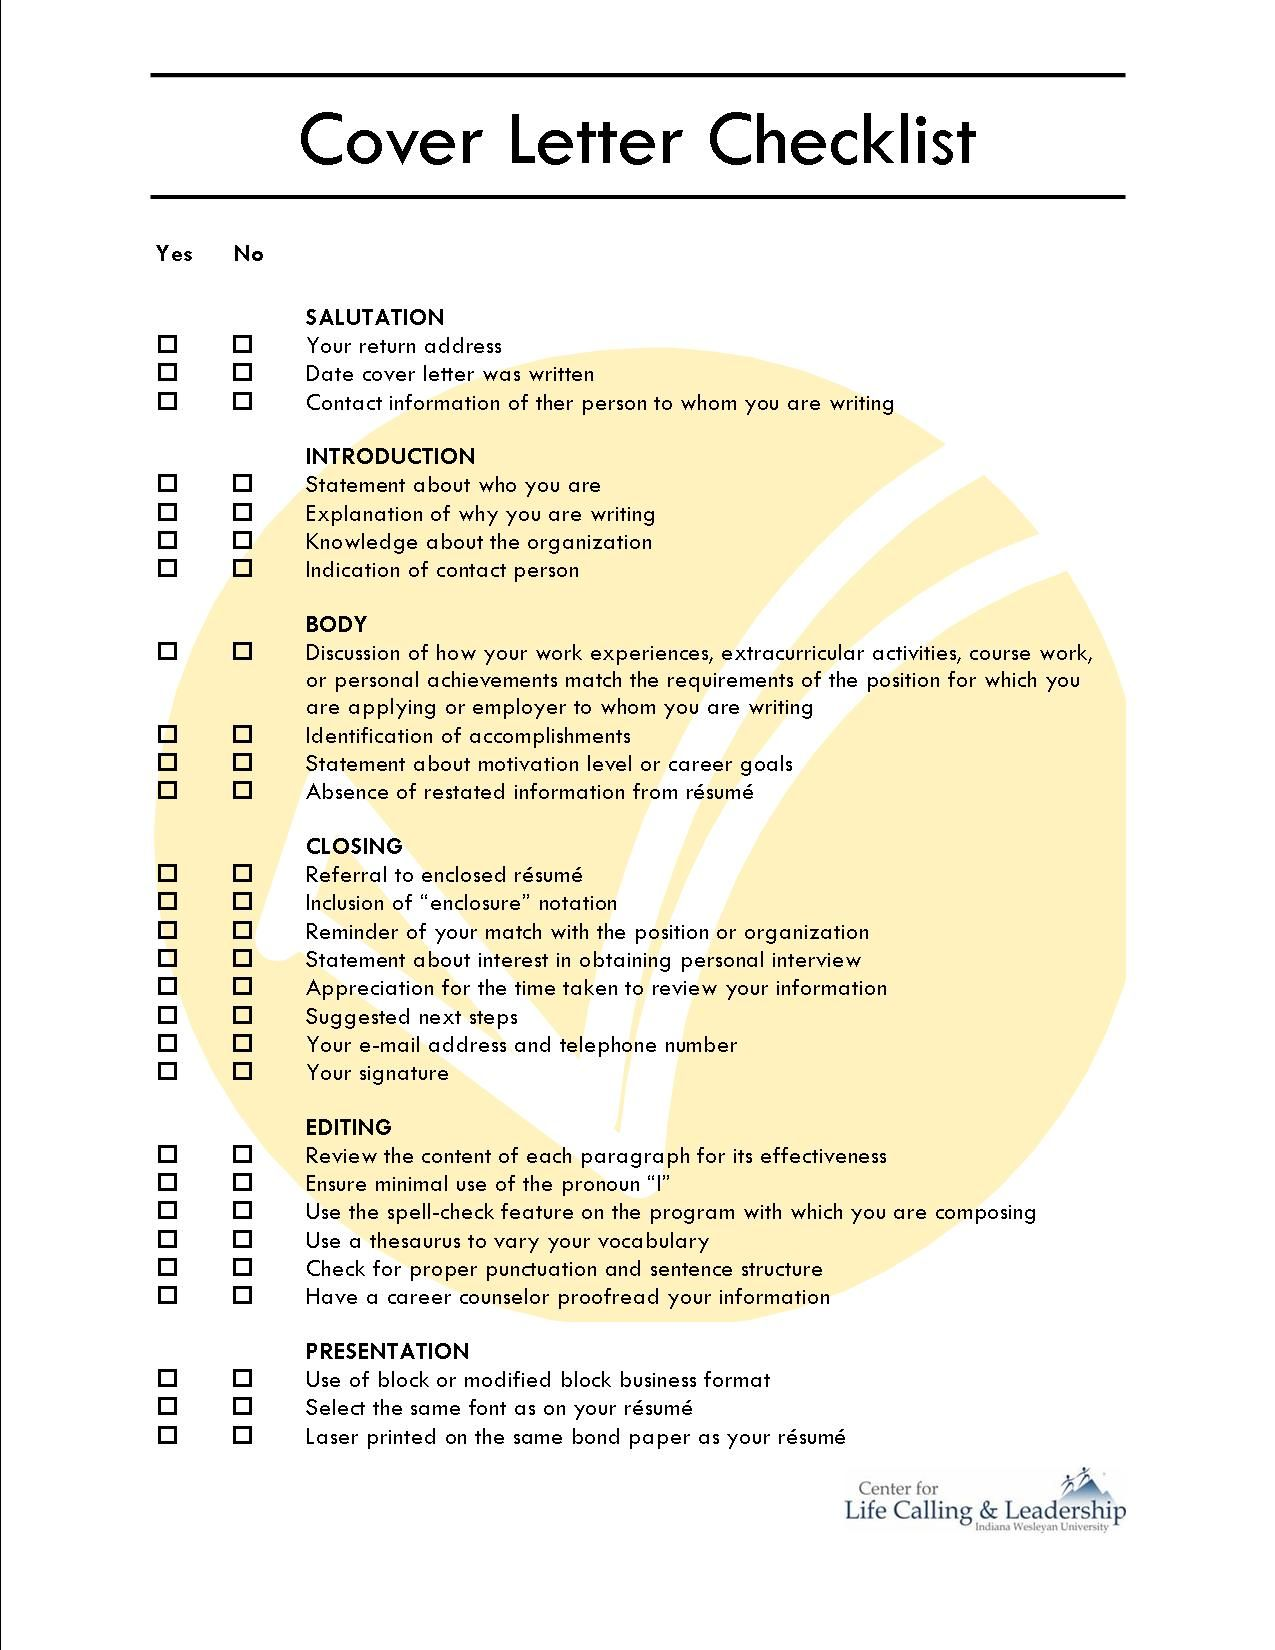 cover letter checklist   Cover